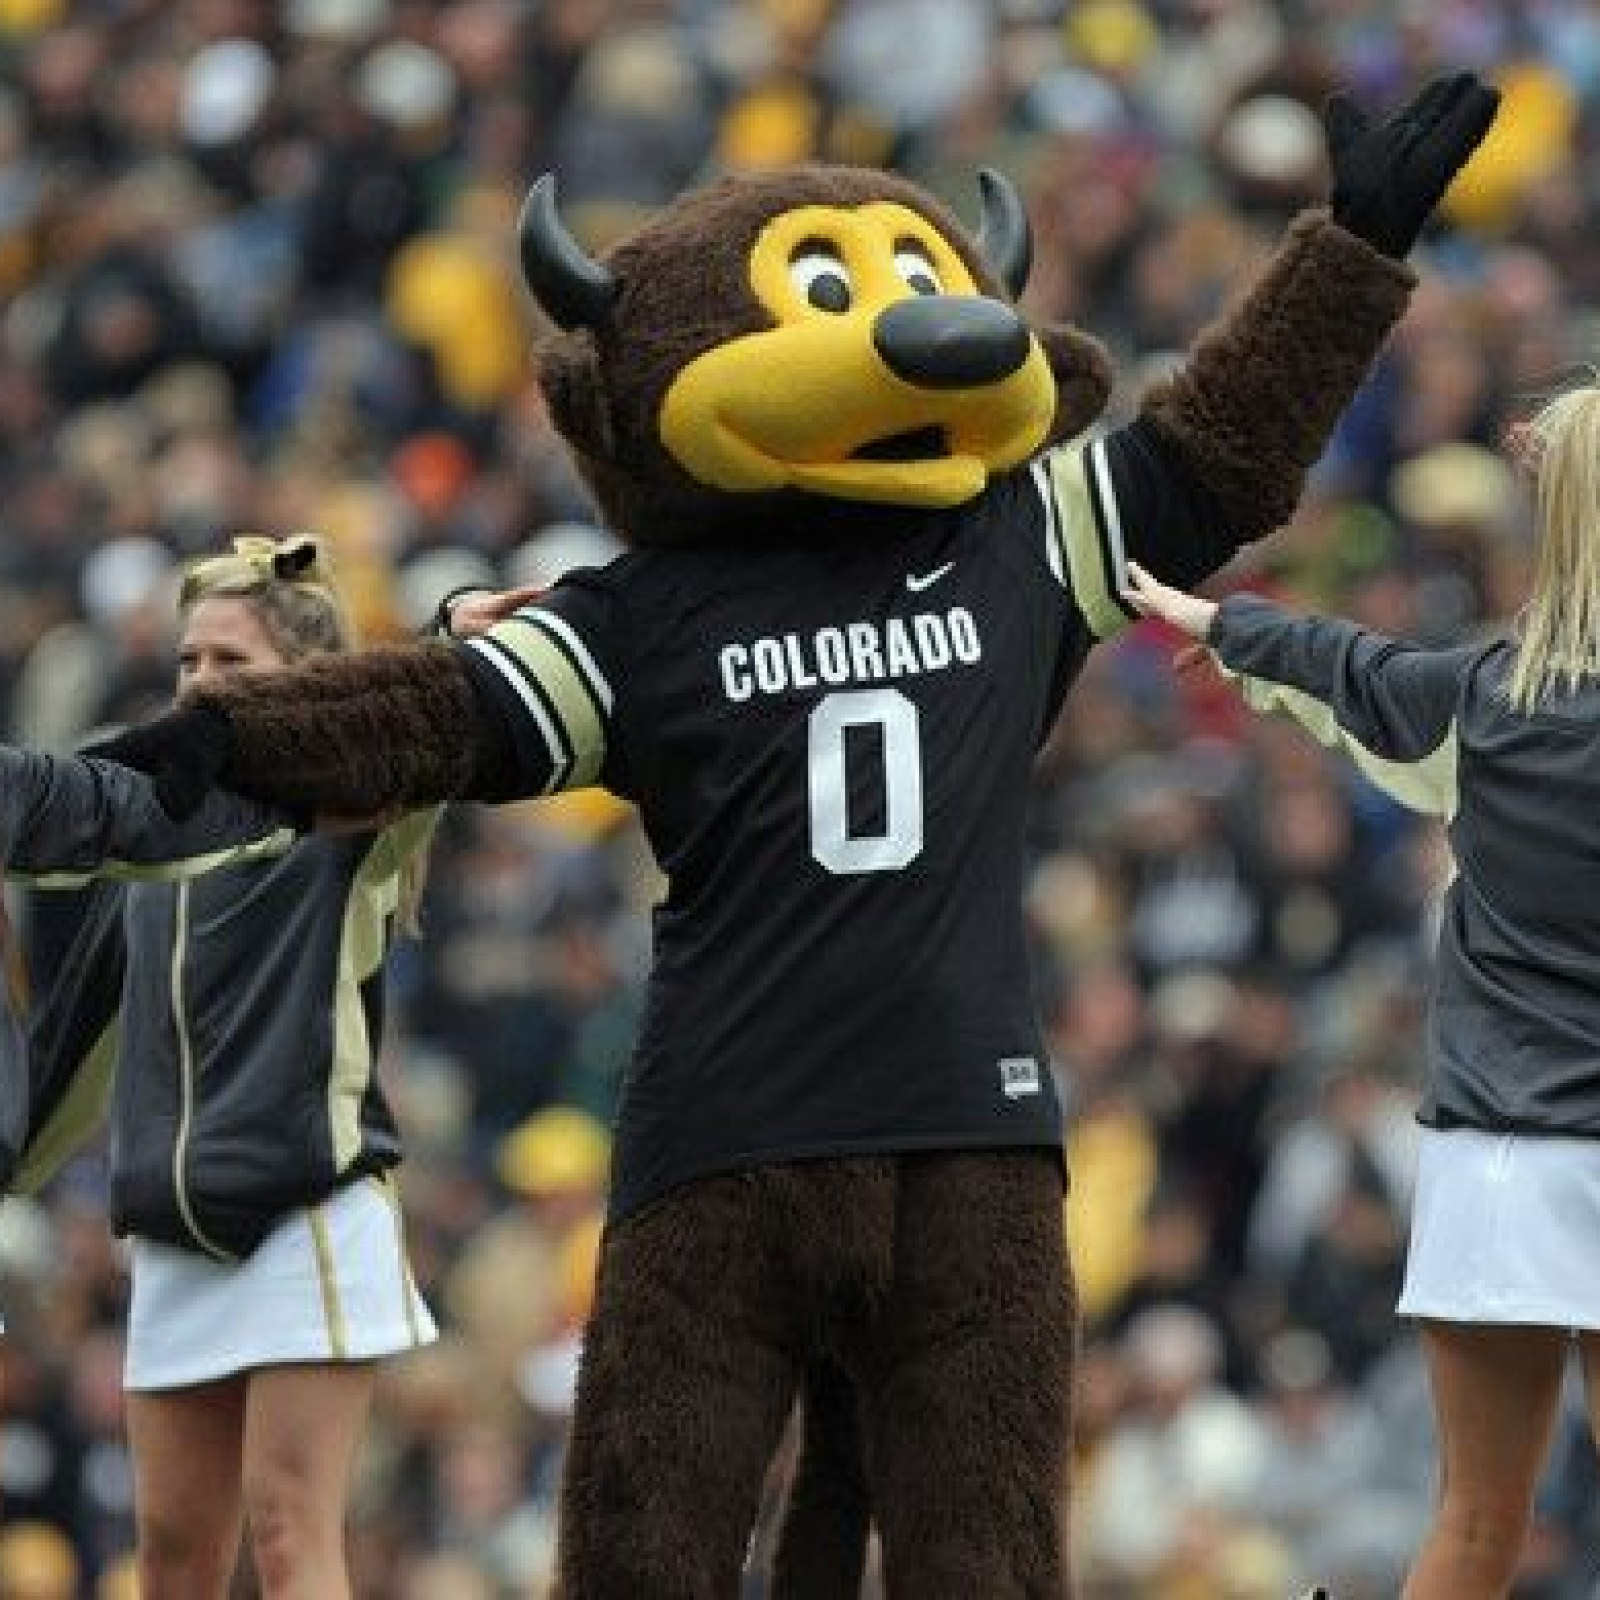 Colorado Buffaloes Mascot Shoots Himself In The Groin After